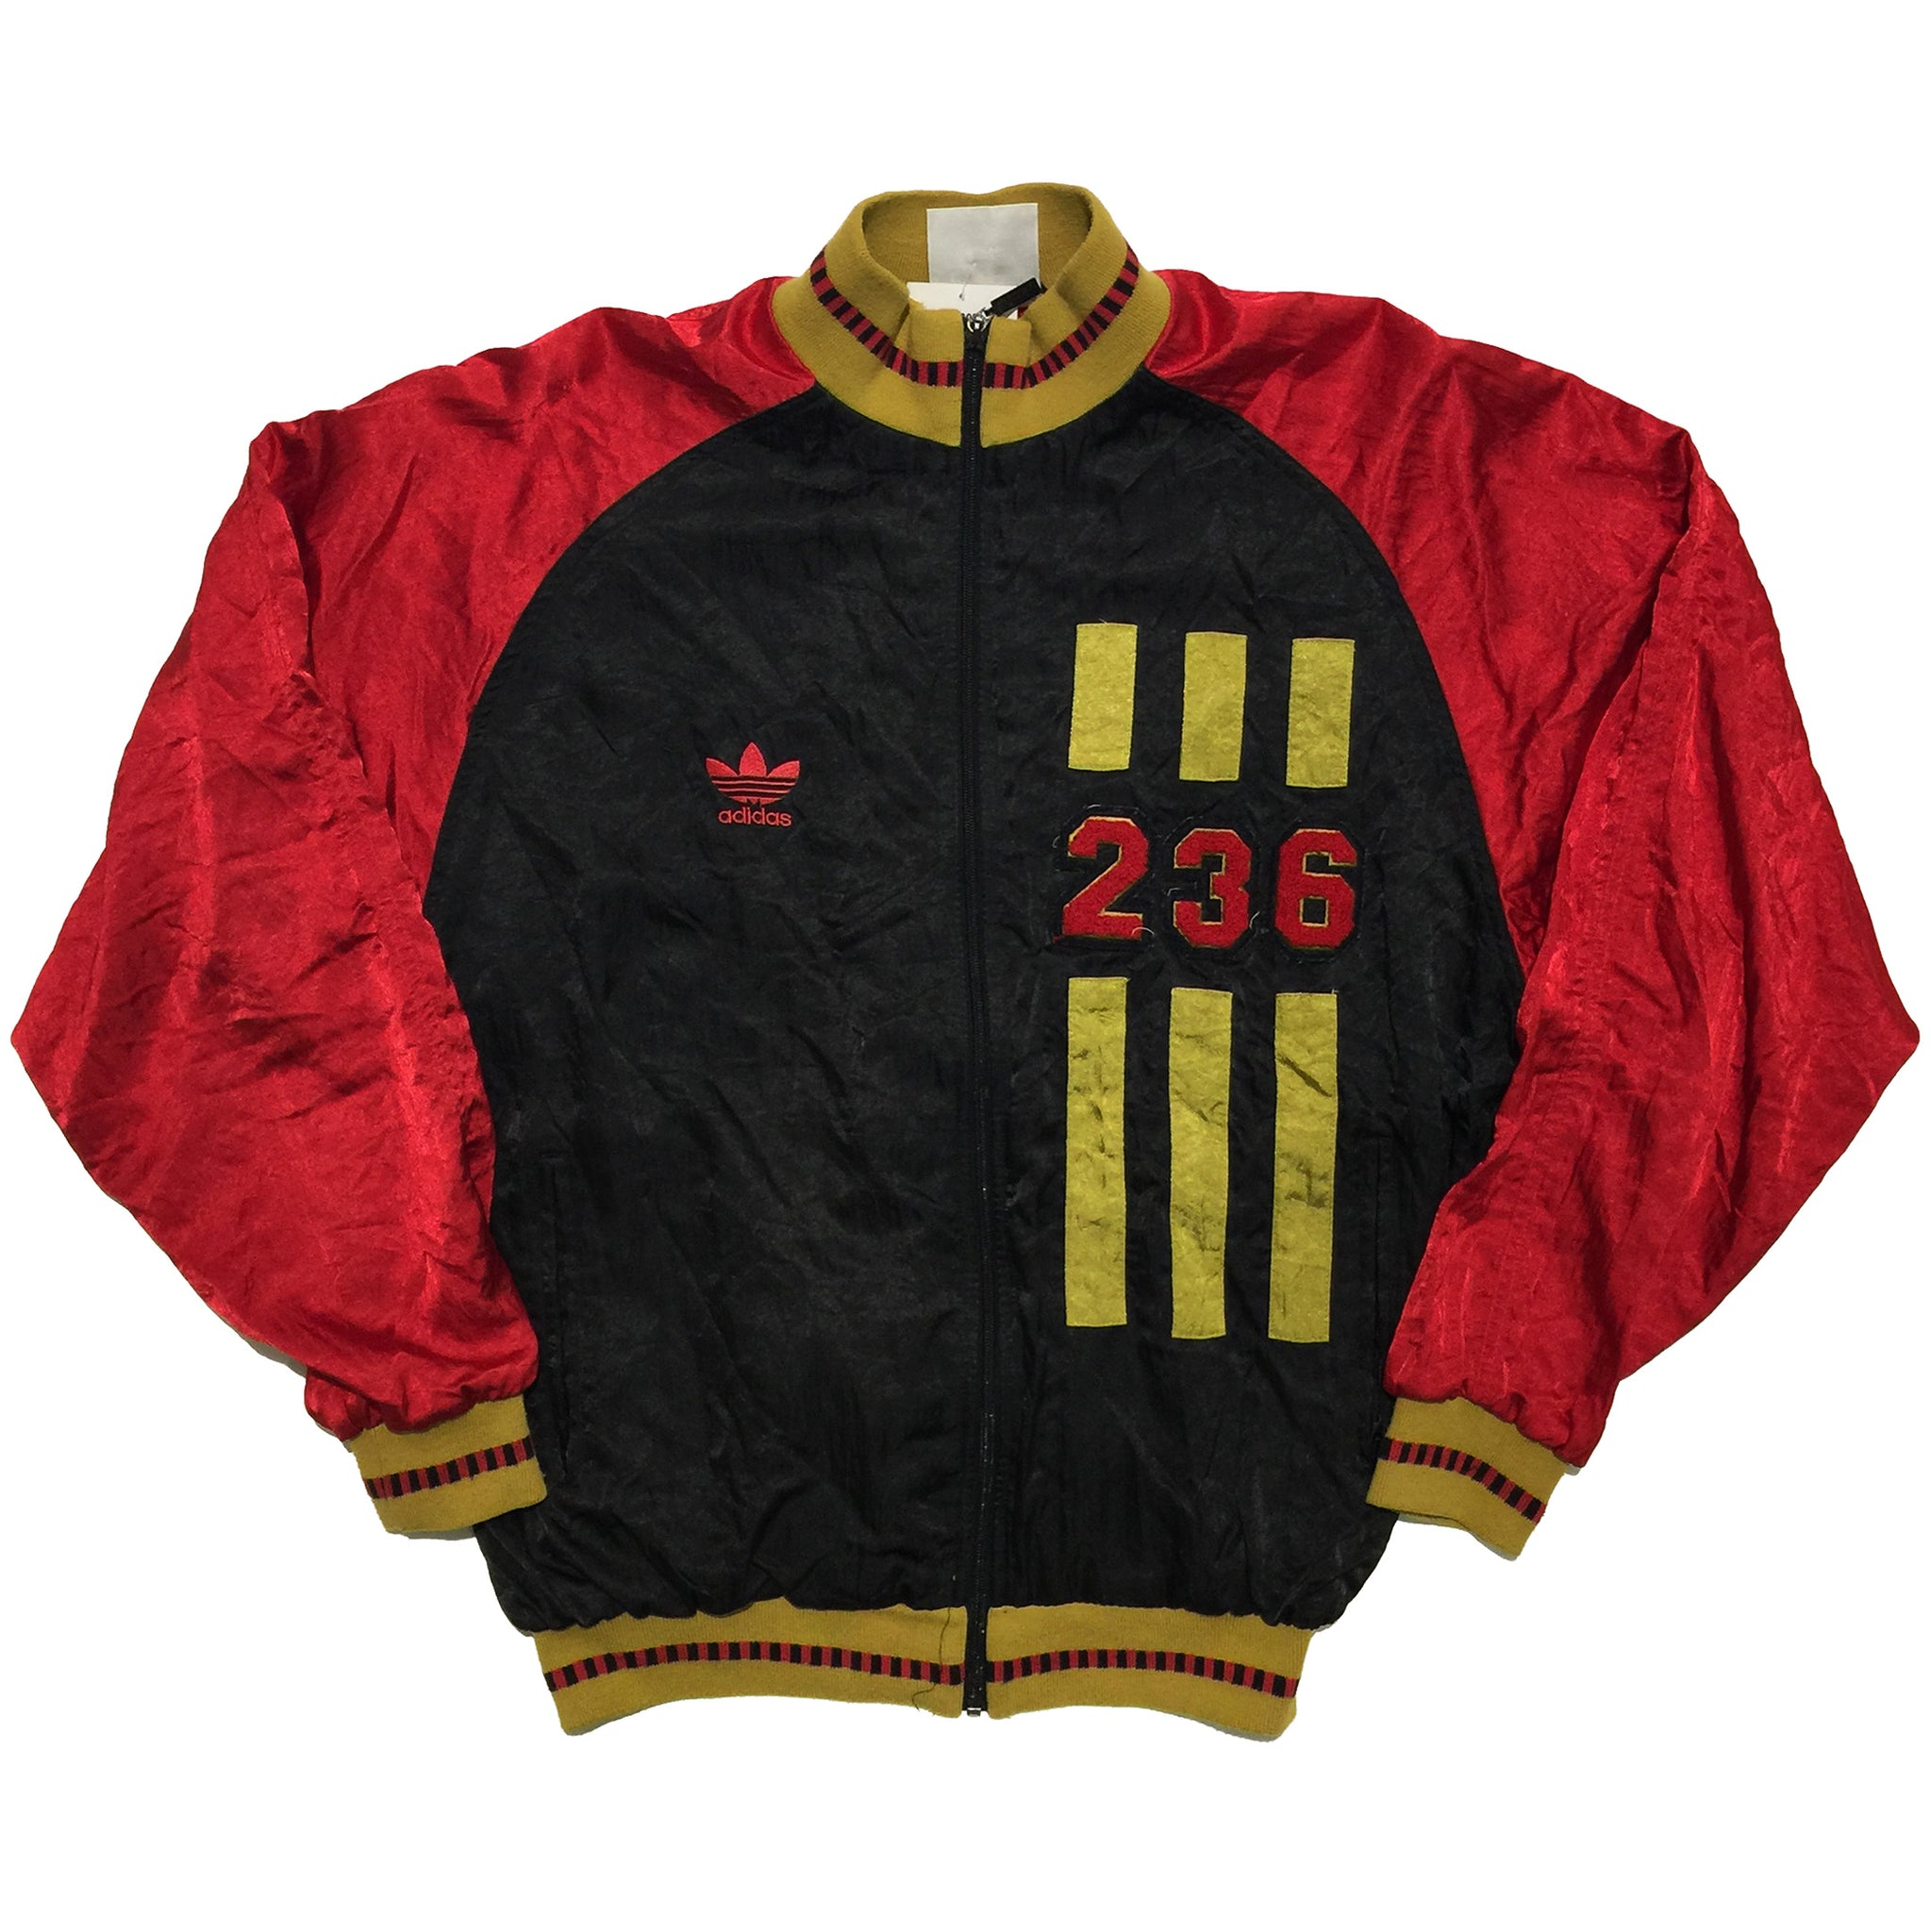 Adidas Red Black and Brown 236 Track Jacket